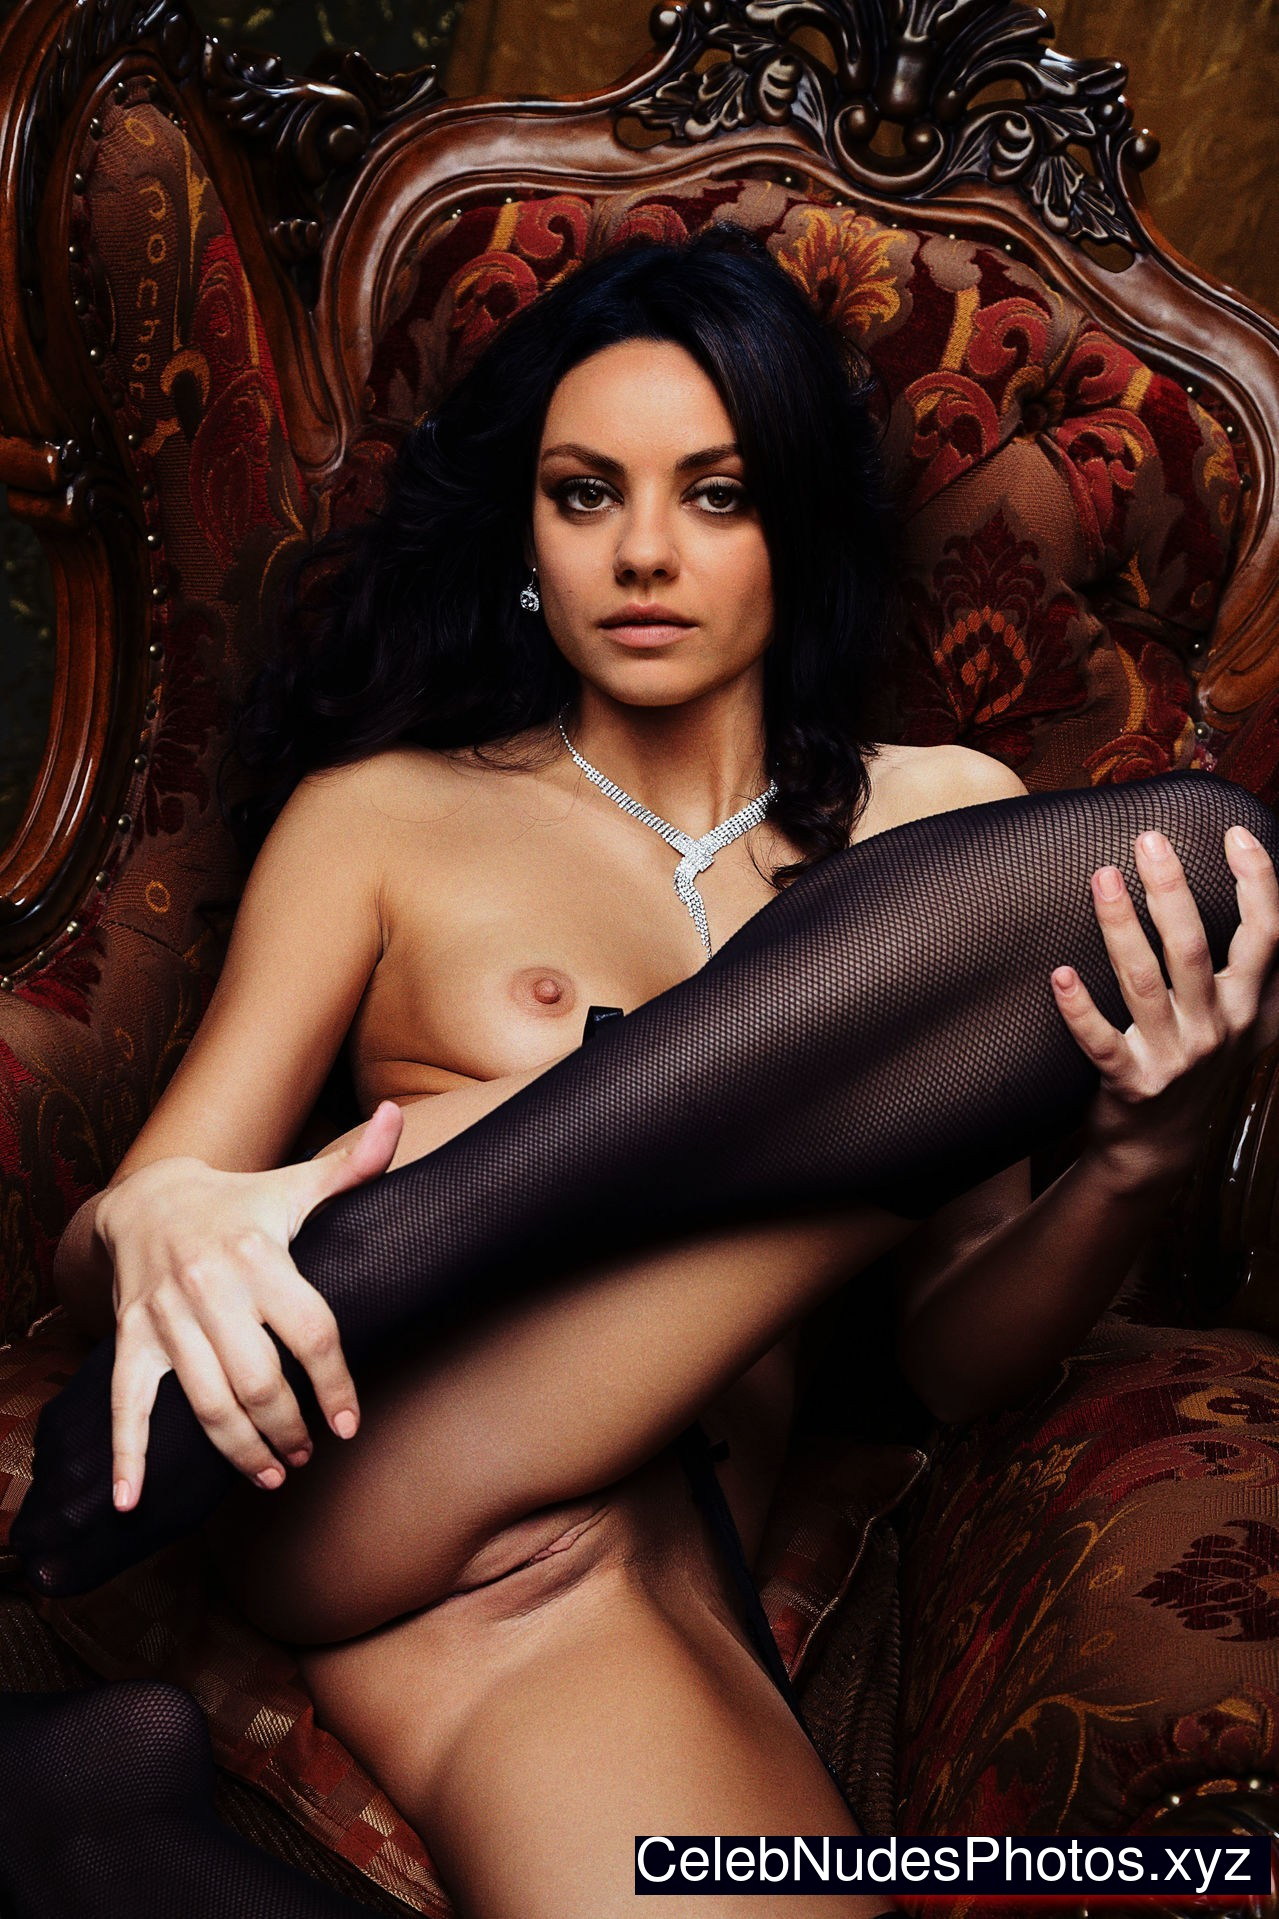 Can Mila kunis nude uncensored pics